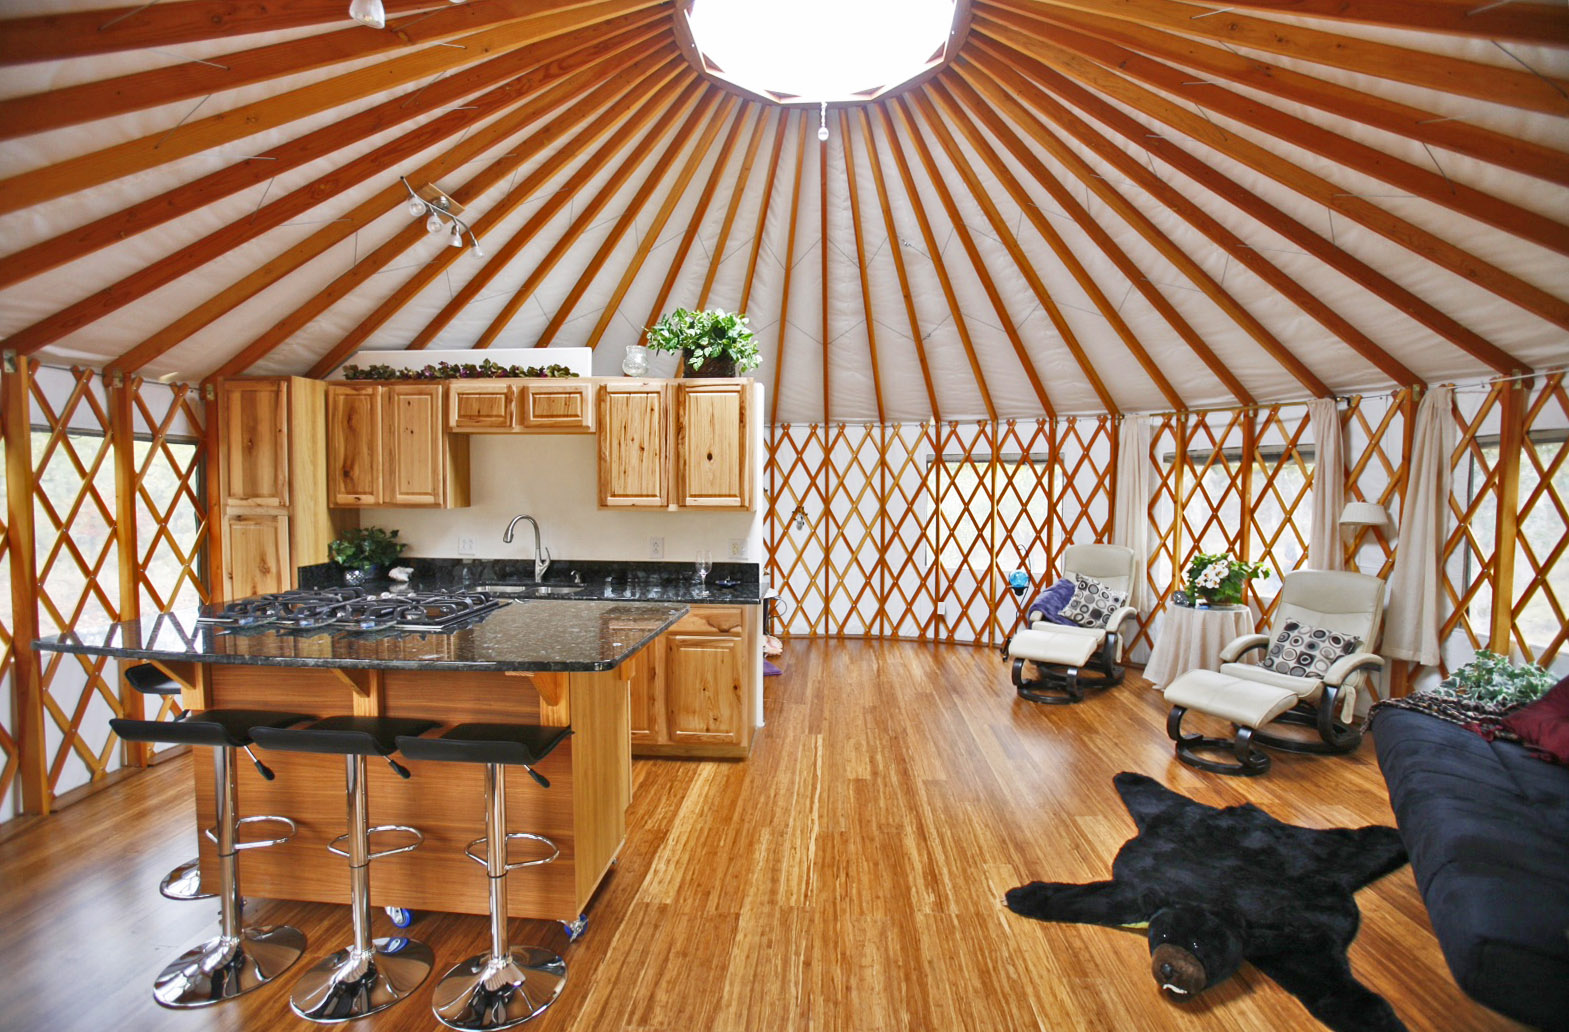 Interior Decorating Kitchen Yurt Home Decorating Ideas Pacific Yurts